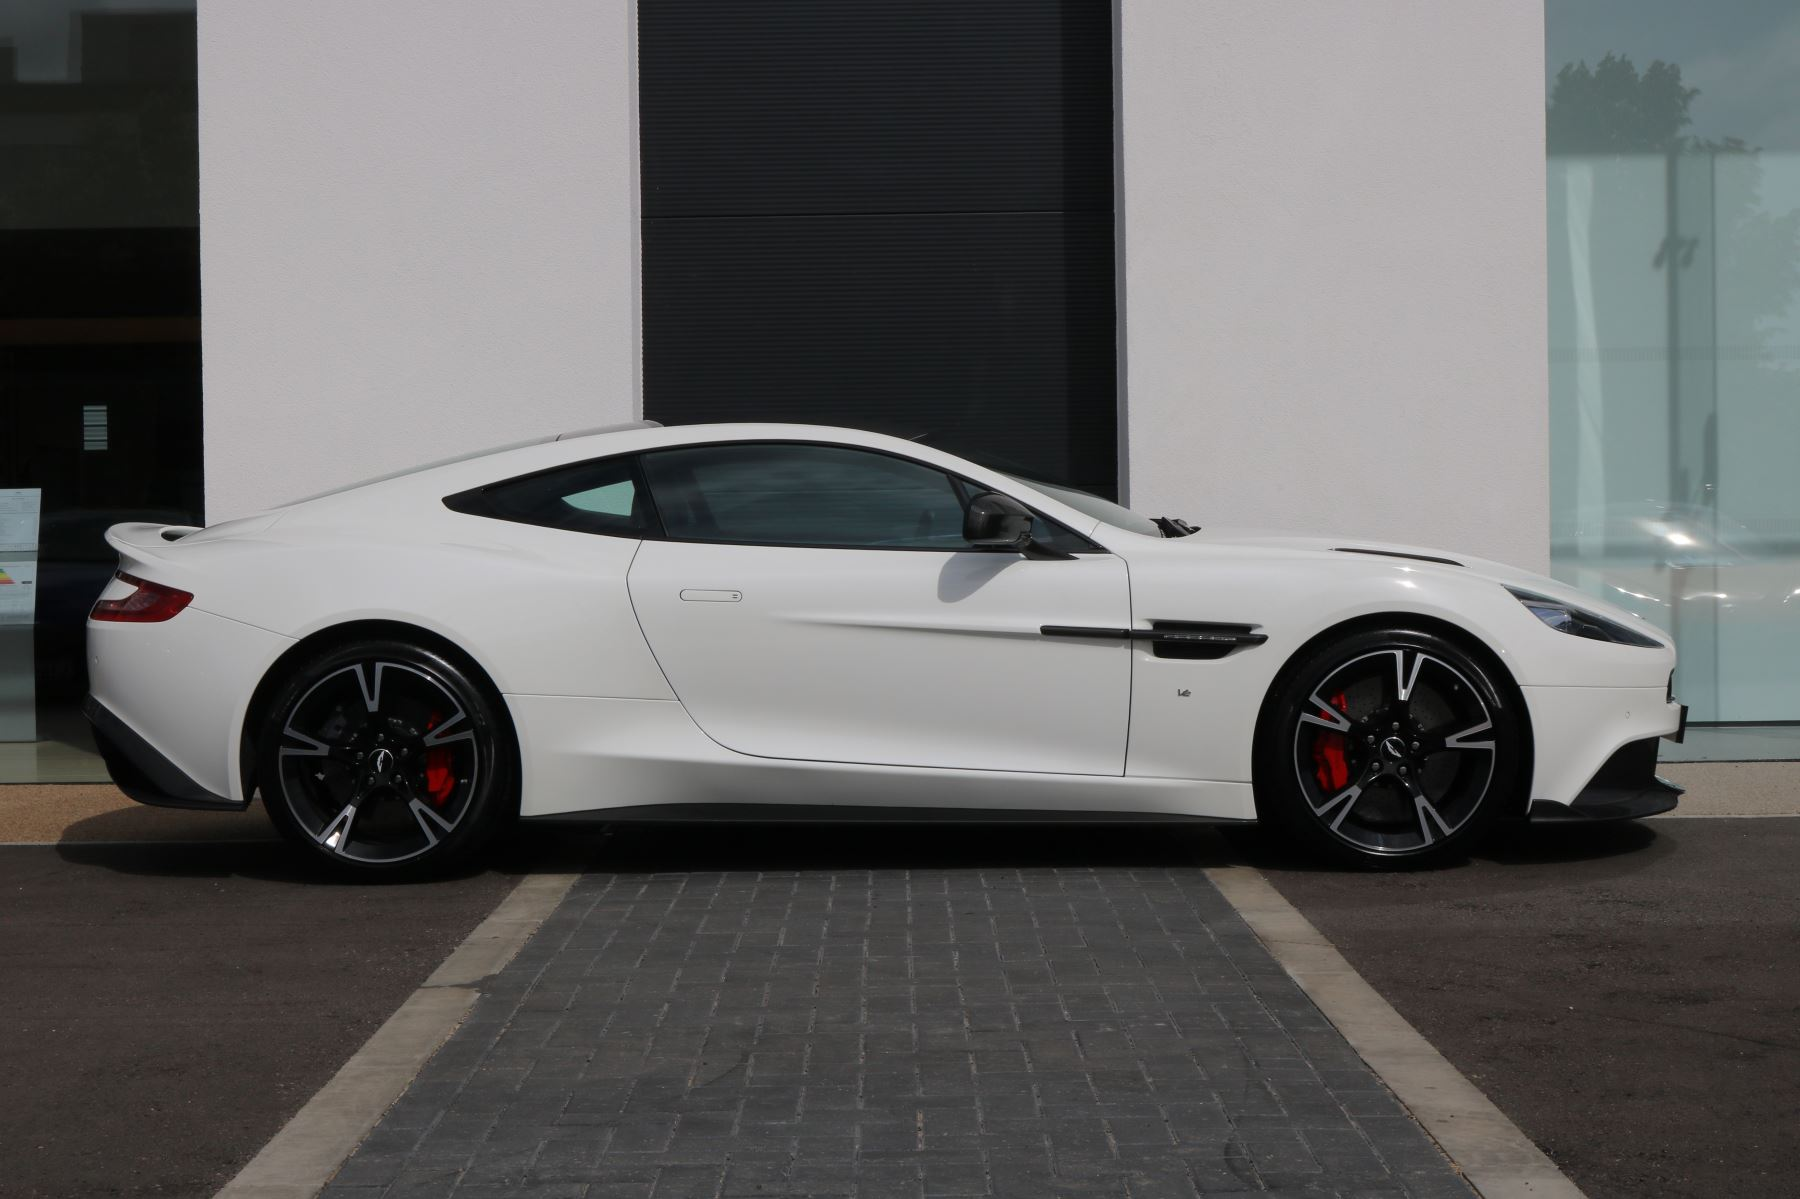 Aston Martin Vanquish V12 [595] S 2+2 2dr Touchtronic image 2